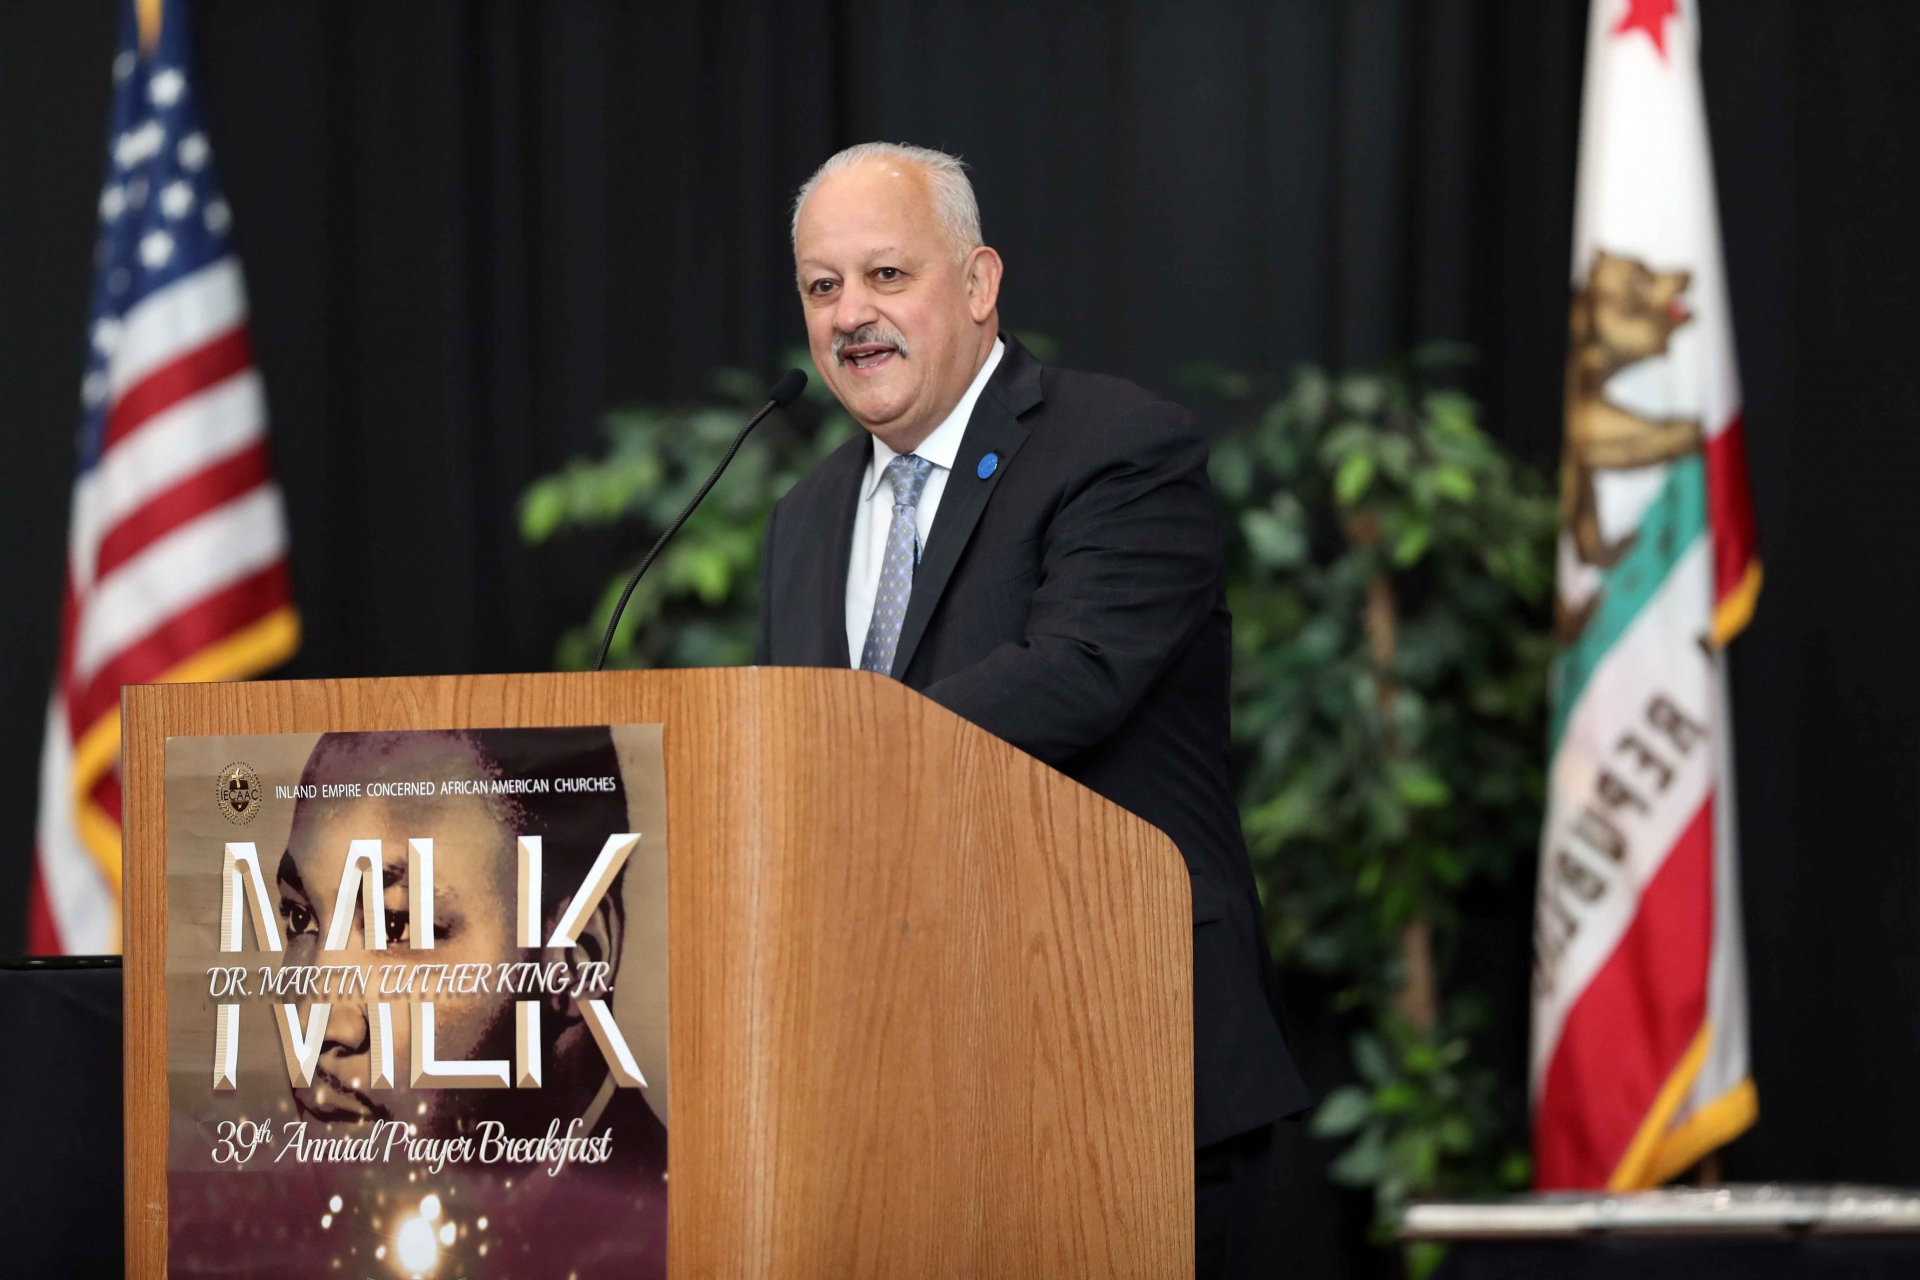 Tomás D. Morales, president of CSUSB, speaks at the 39th Annual Martin Luther King Jr. Prayer Breakfast.